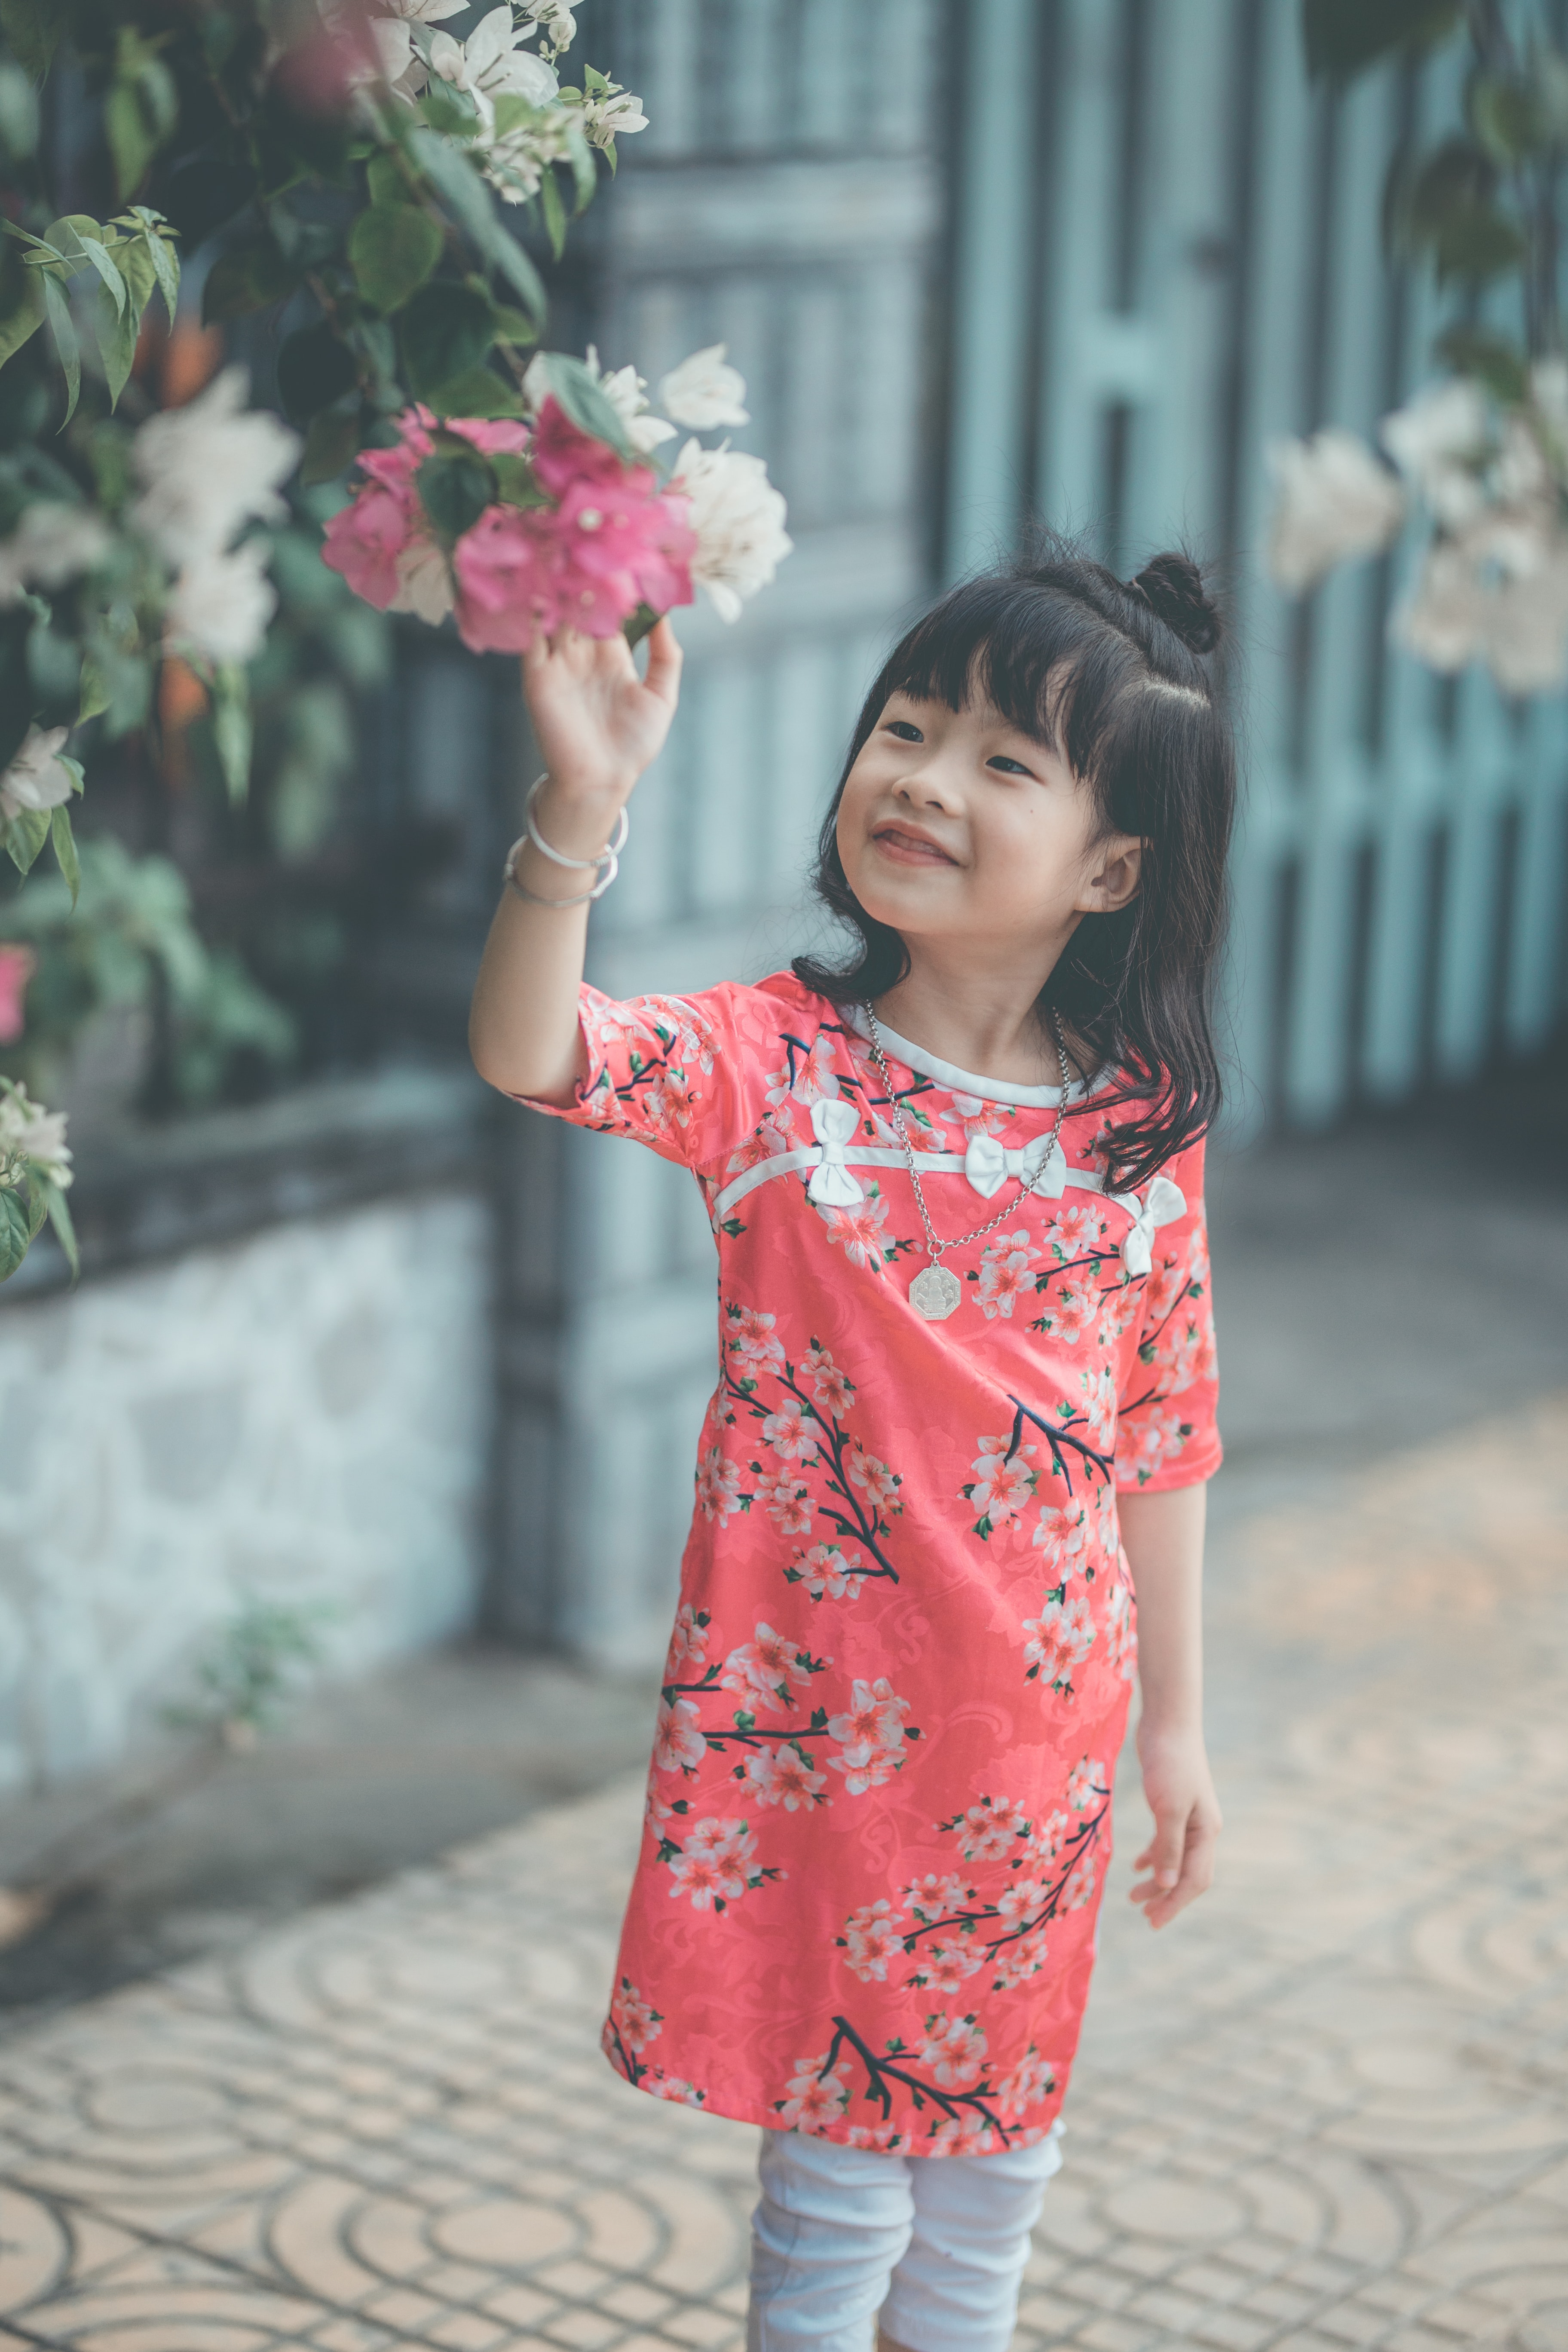 girl standing about to touch flower